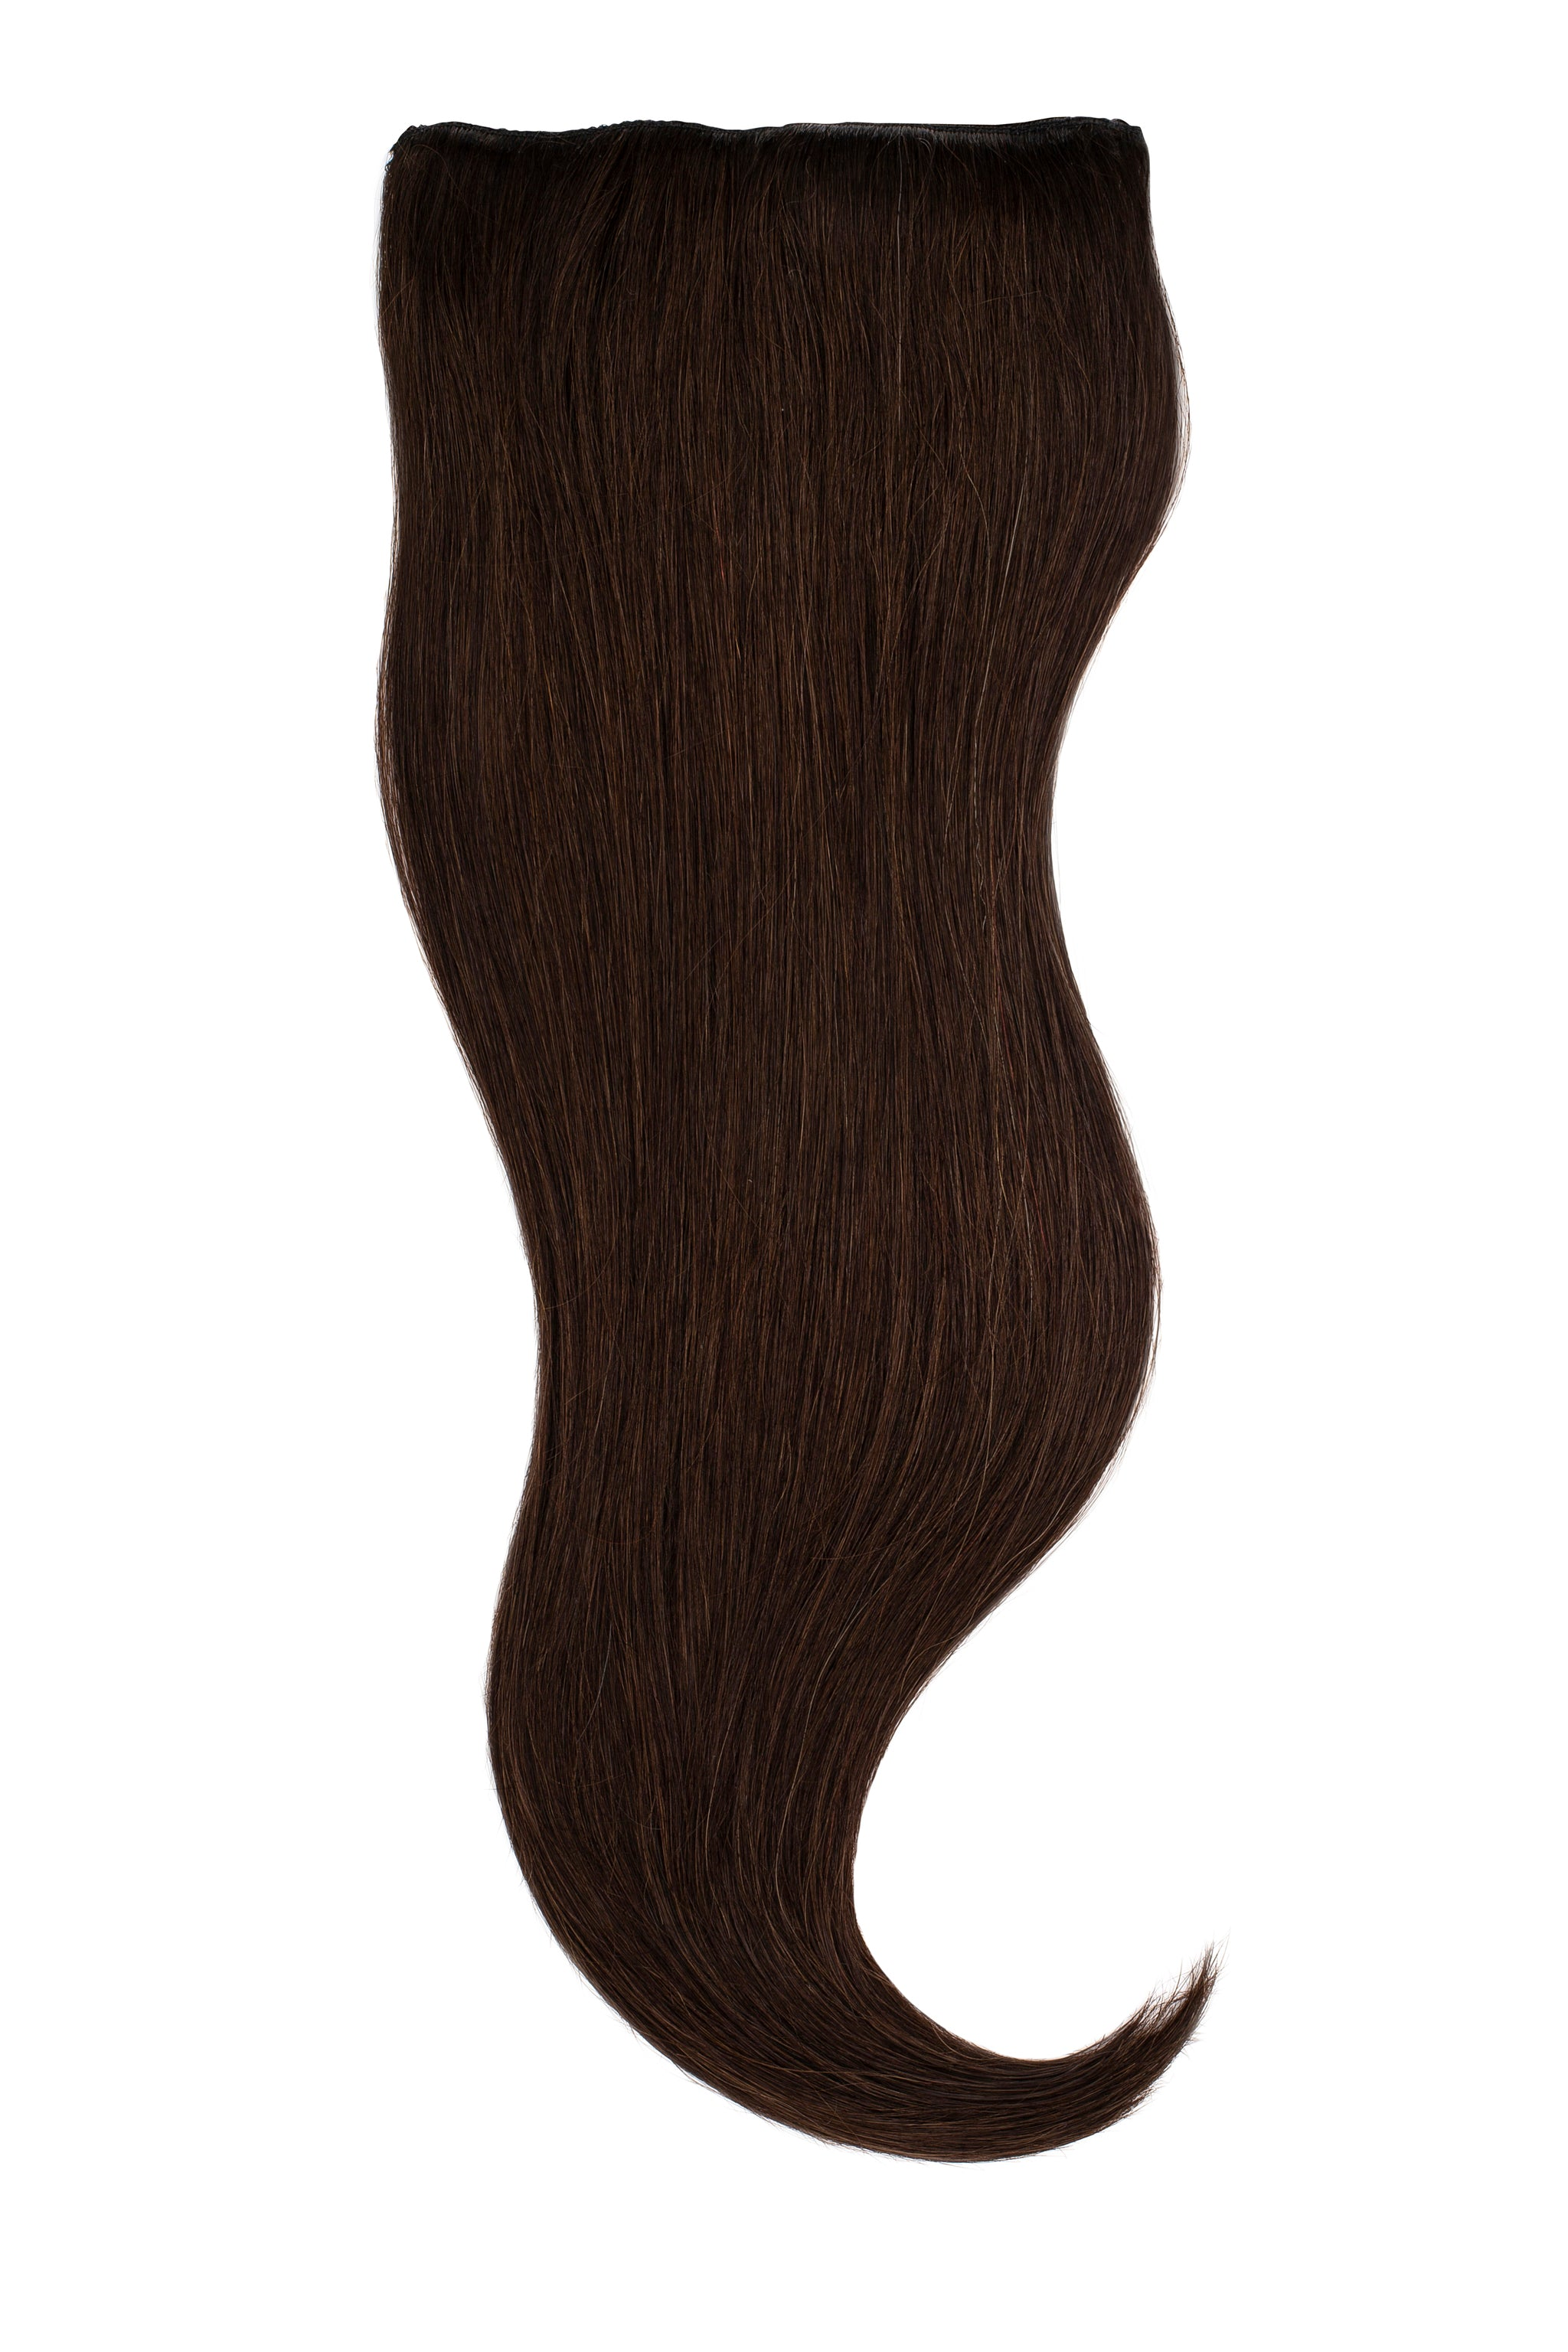 Espresso Brown Clip In Hair Extension